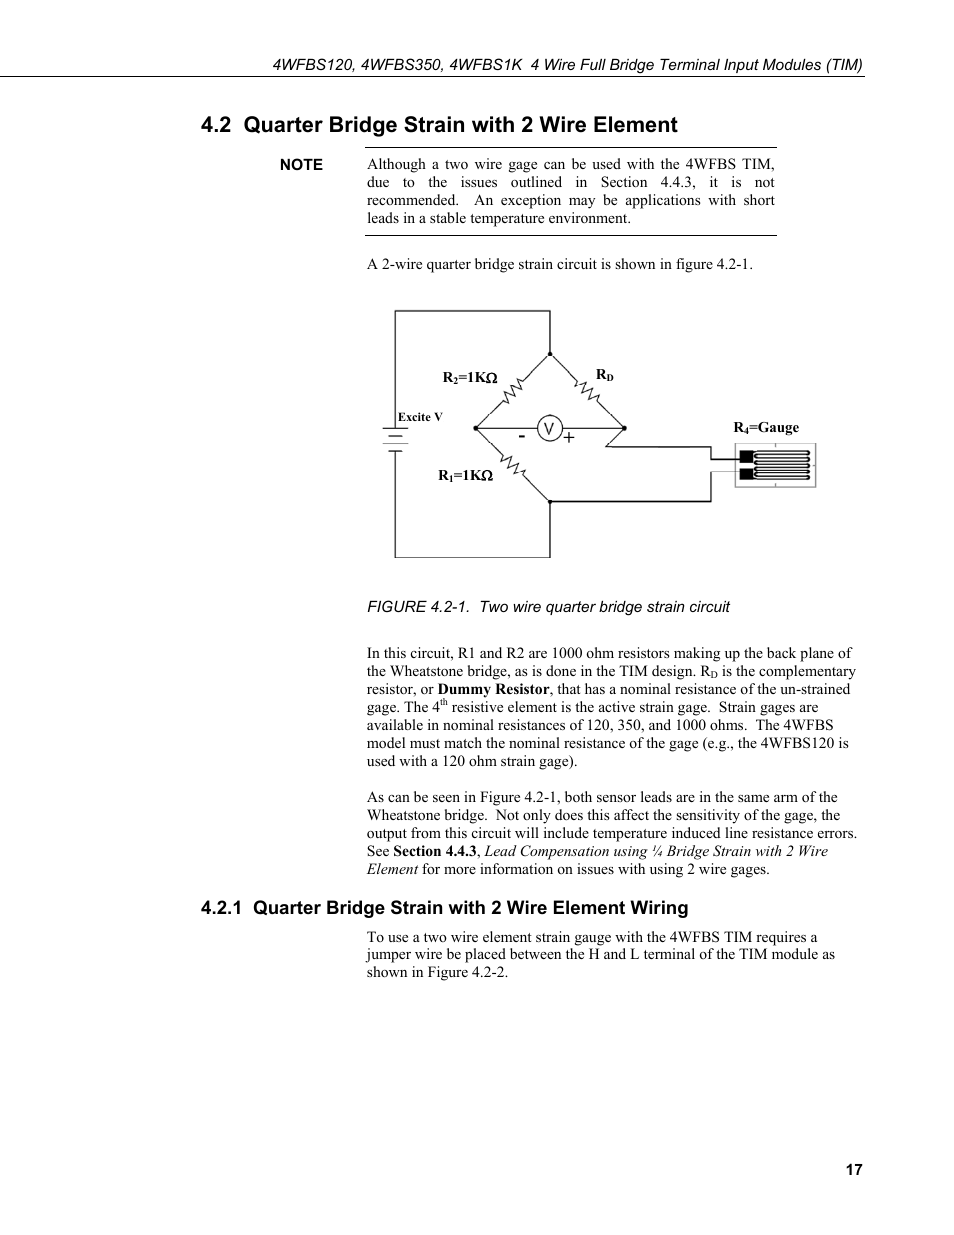 2 Quarter Bridge Strain With Wire Element 1 Figure H Circuit Wiring Campbell Scientific 4wfbs120 4wfbs350 4wfbs1k 4